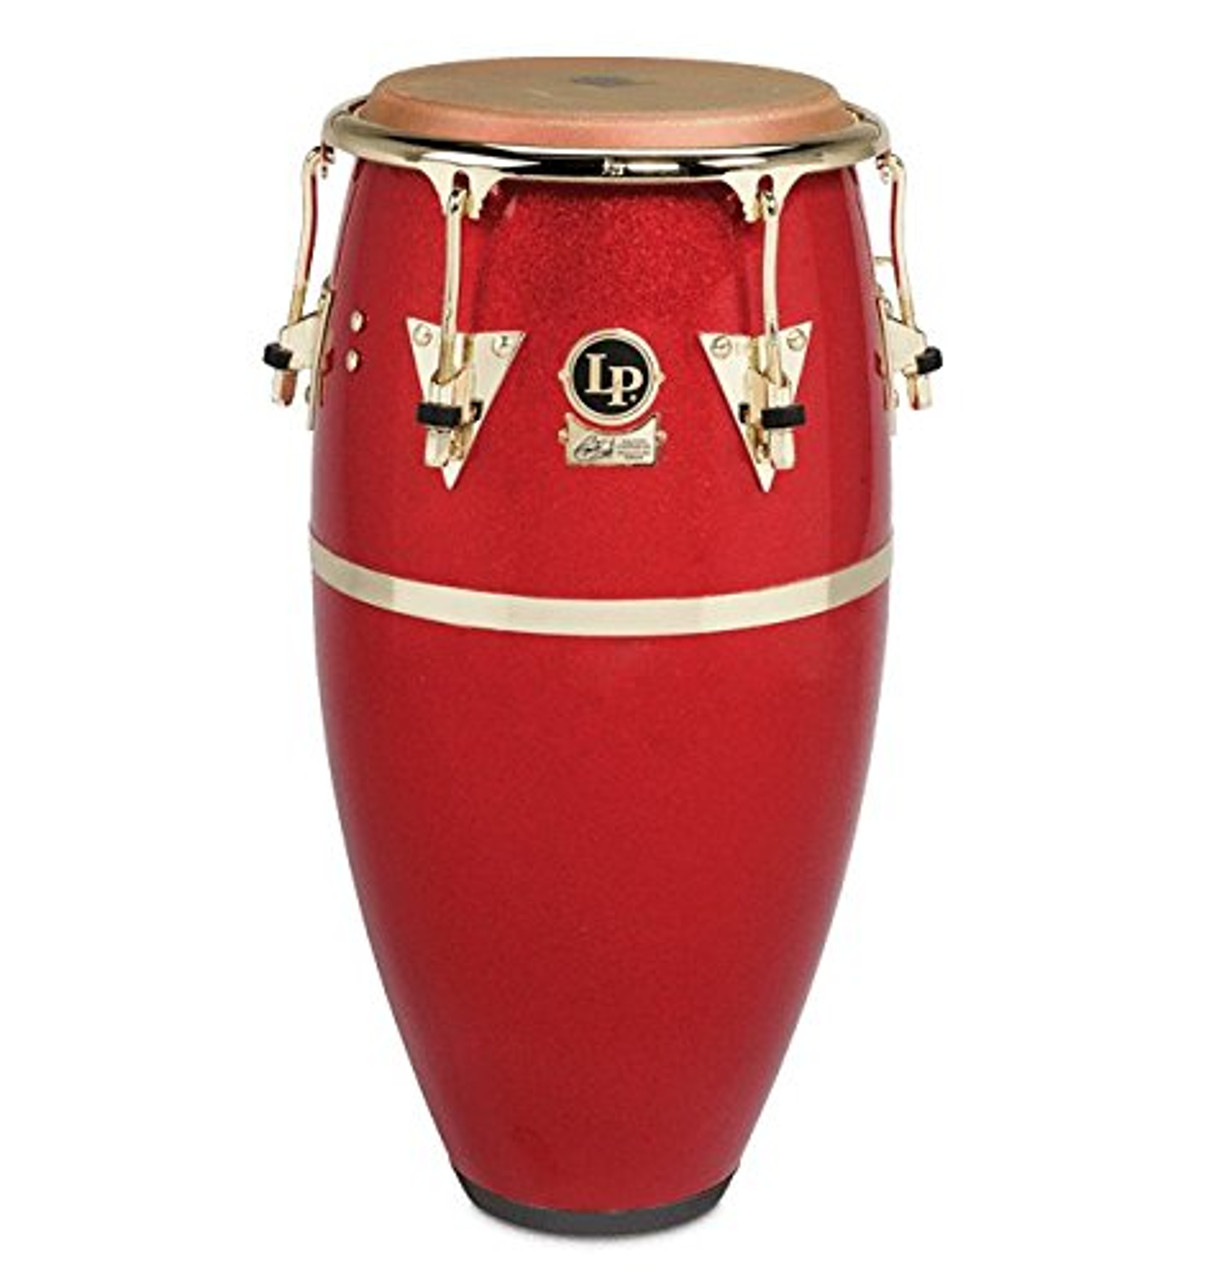 Drum Workshop Fausto Ccii 11 3/4 Conga Fg a Red Gd